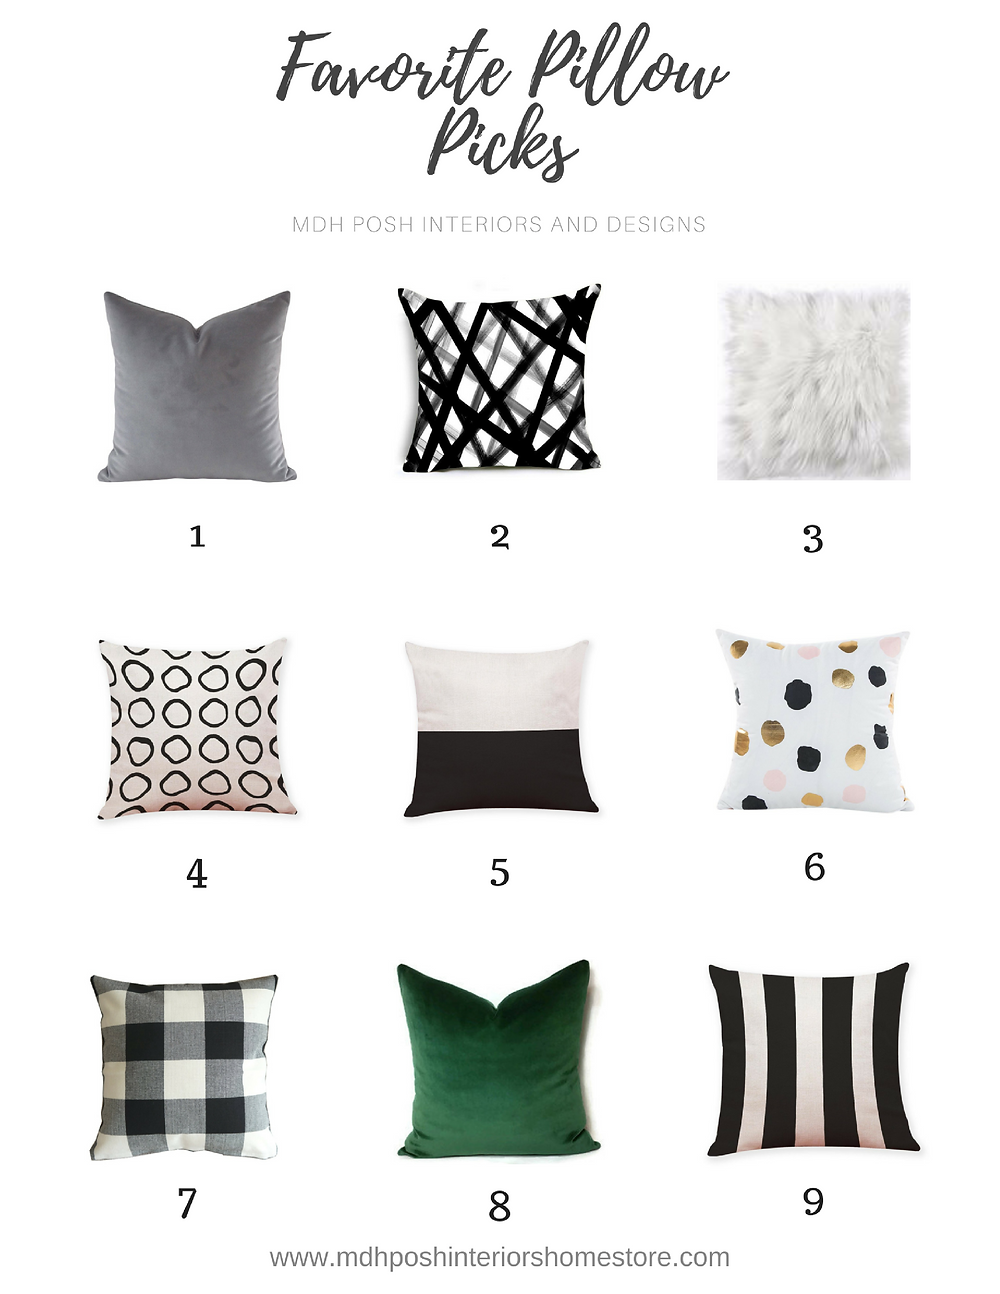 Favorite Pillow Picks by MDH Posh Interiors and Design